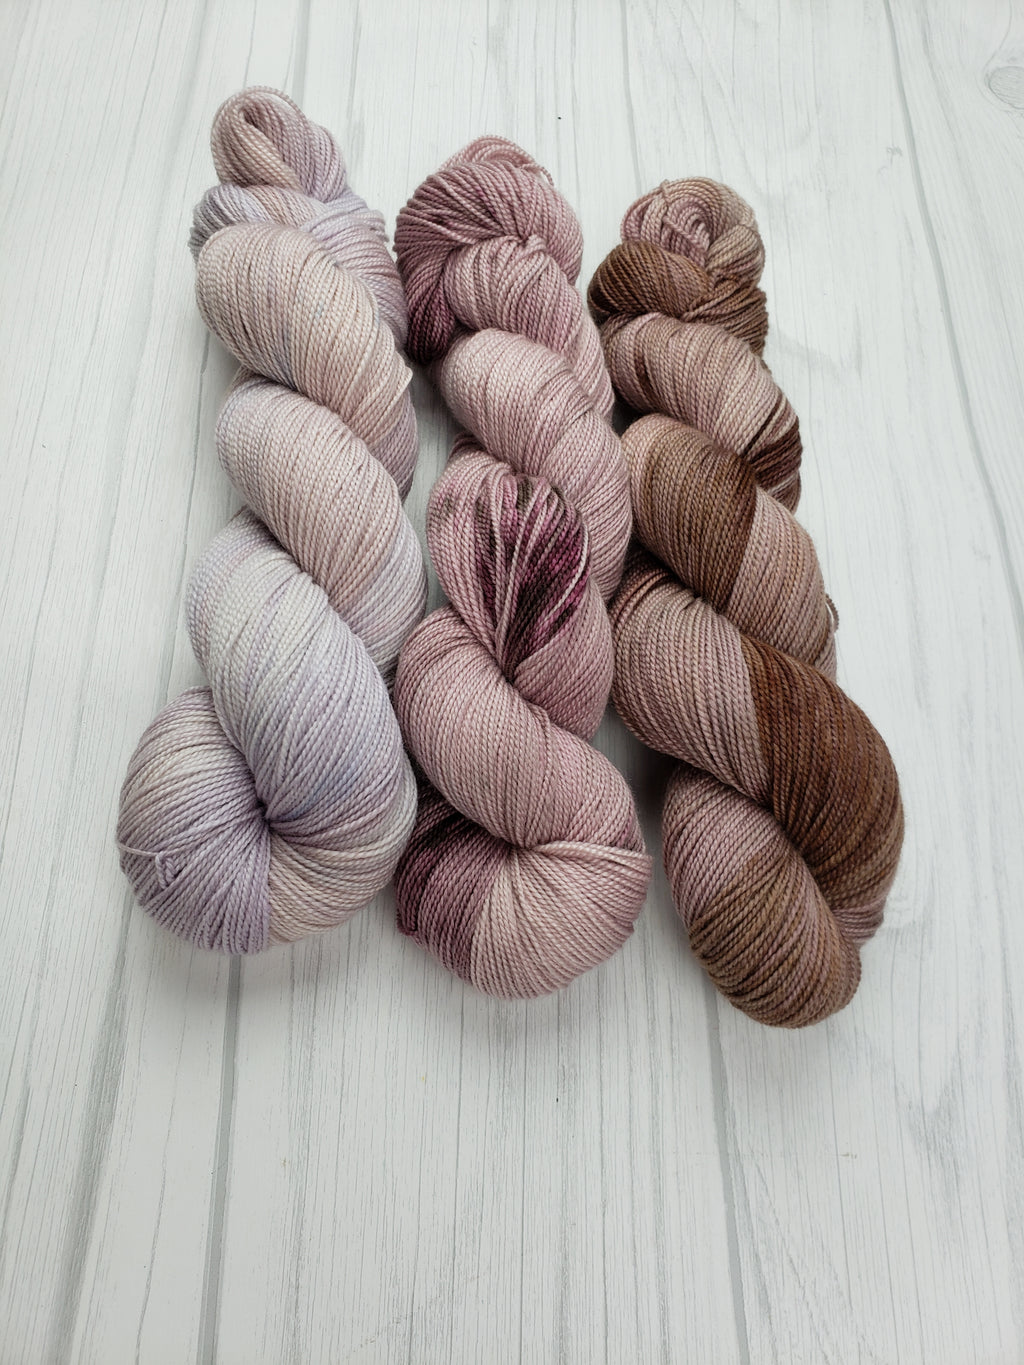 Plum Creek, Hand Dyed Fade Set in Sock Weight - Spindle warps yarns